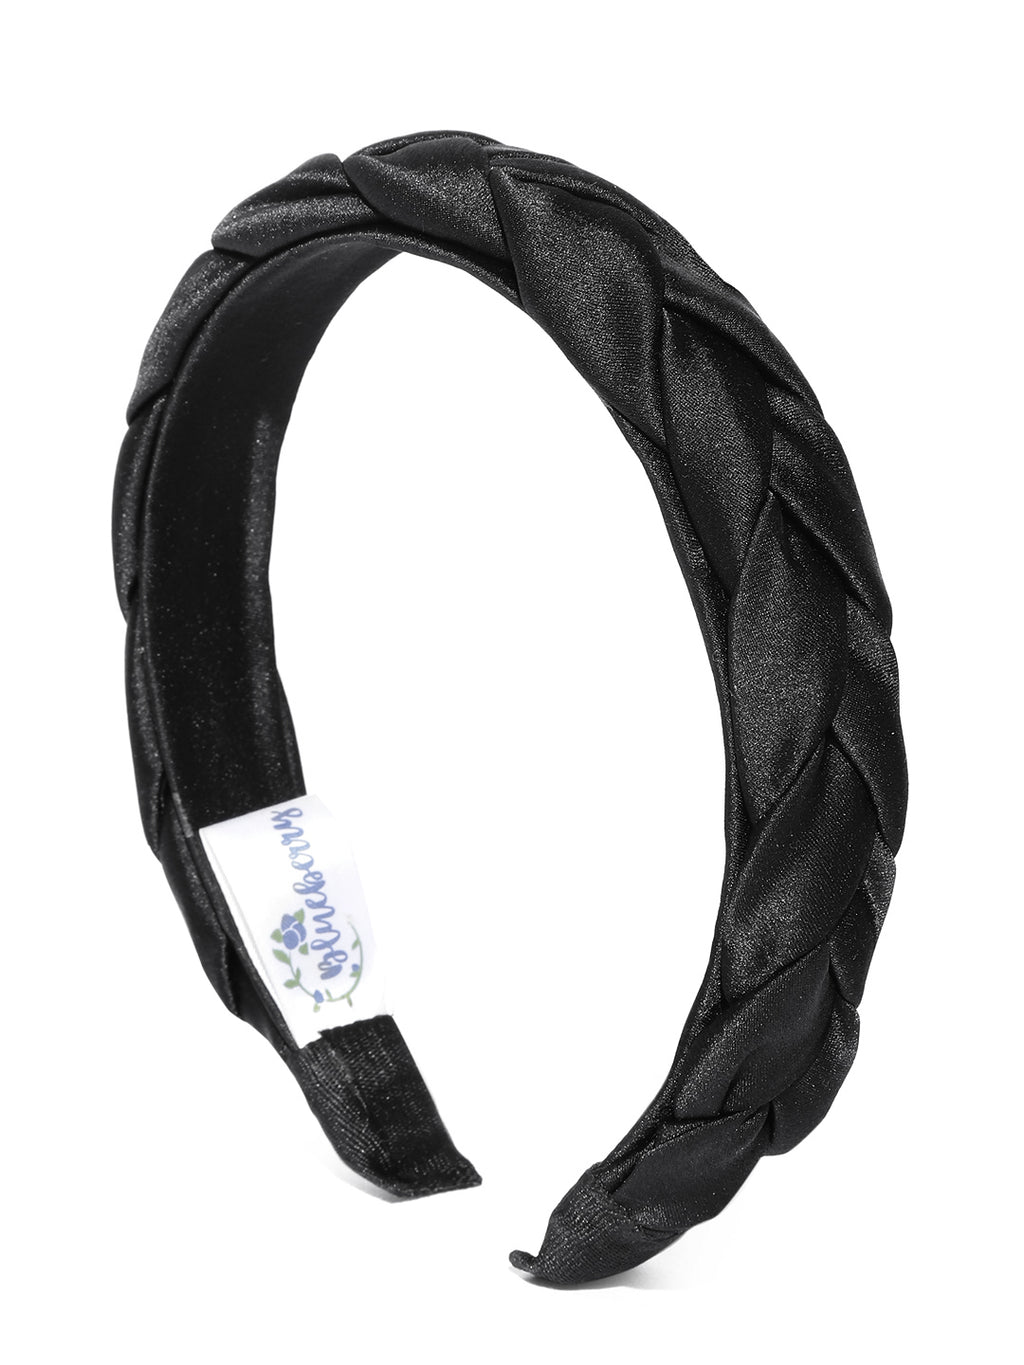 Blueberry balck cross knot detailings satin hairband